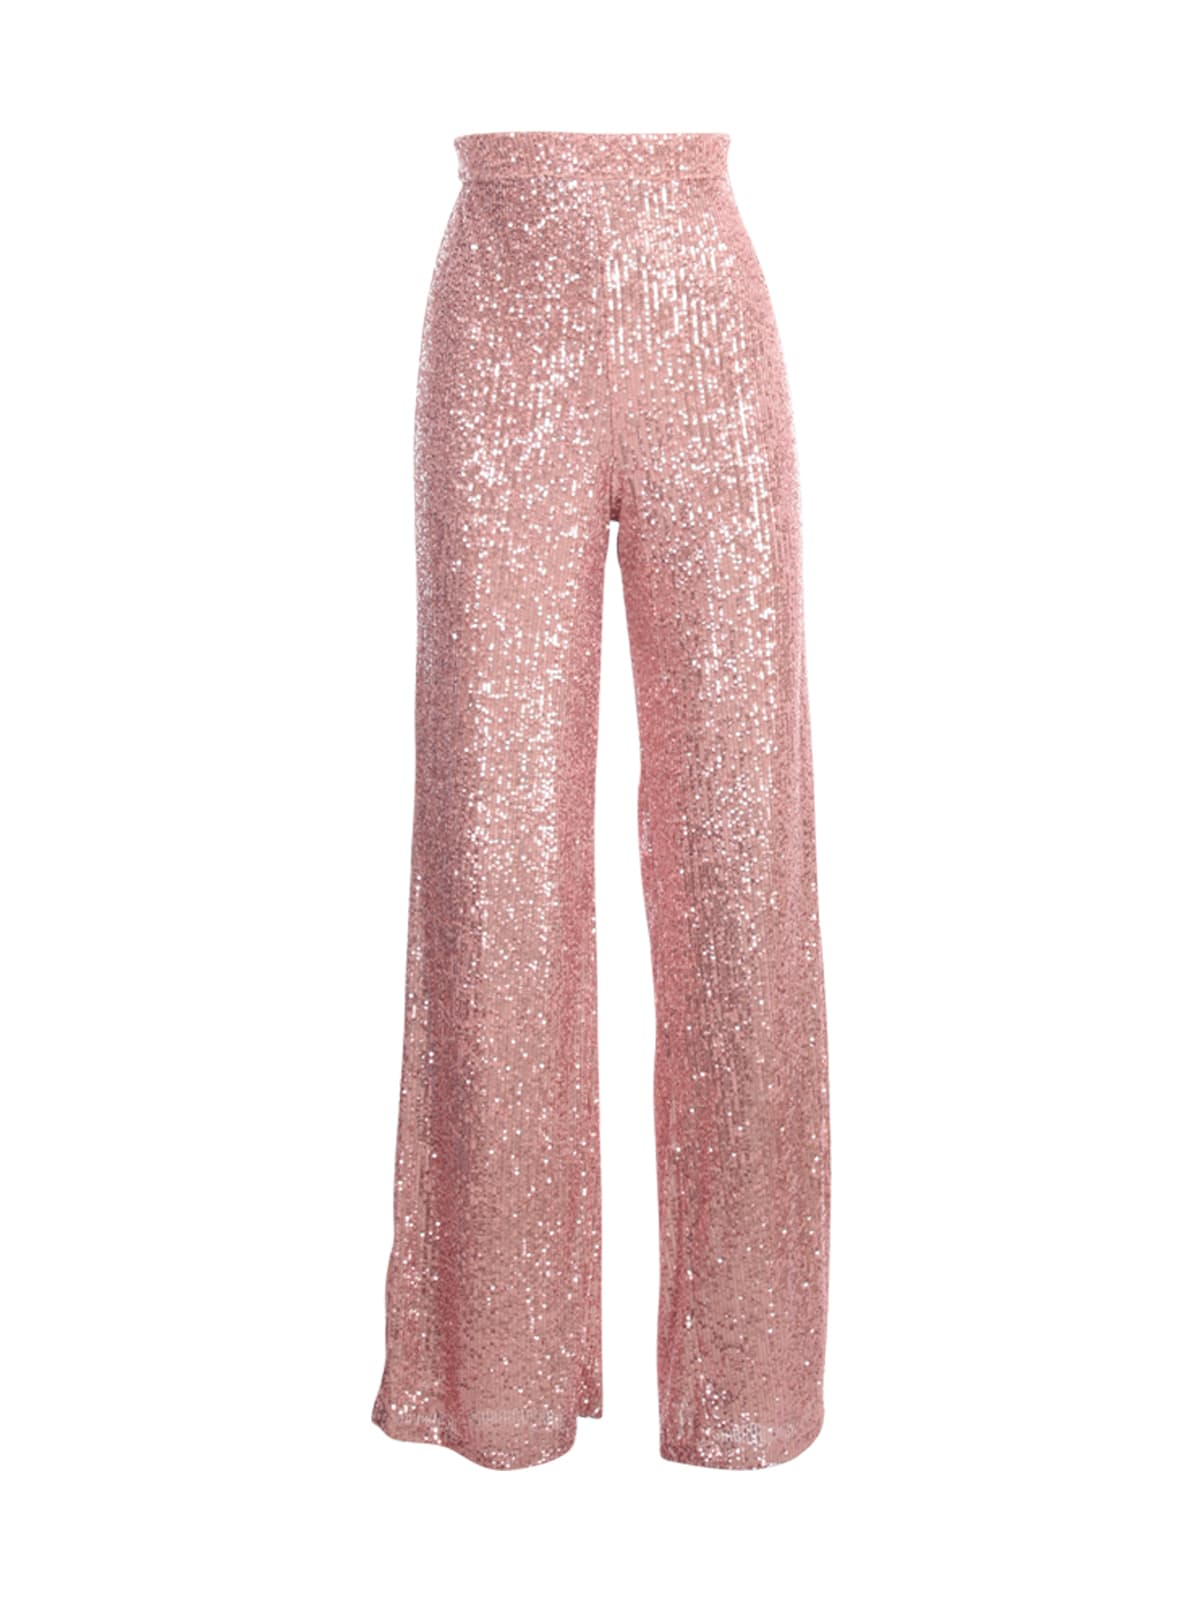 Be Blumarine Pants W/paillettes